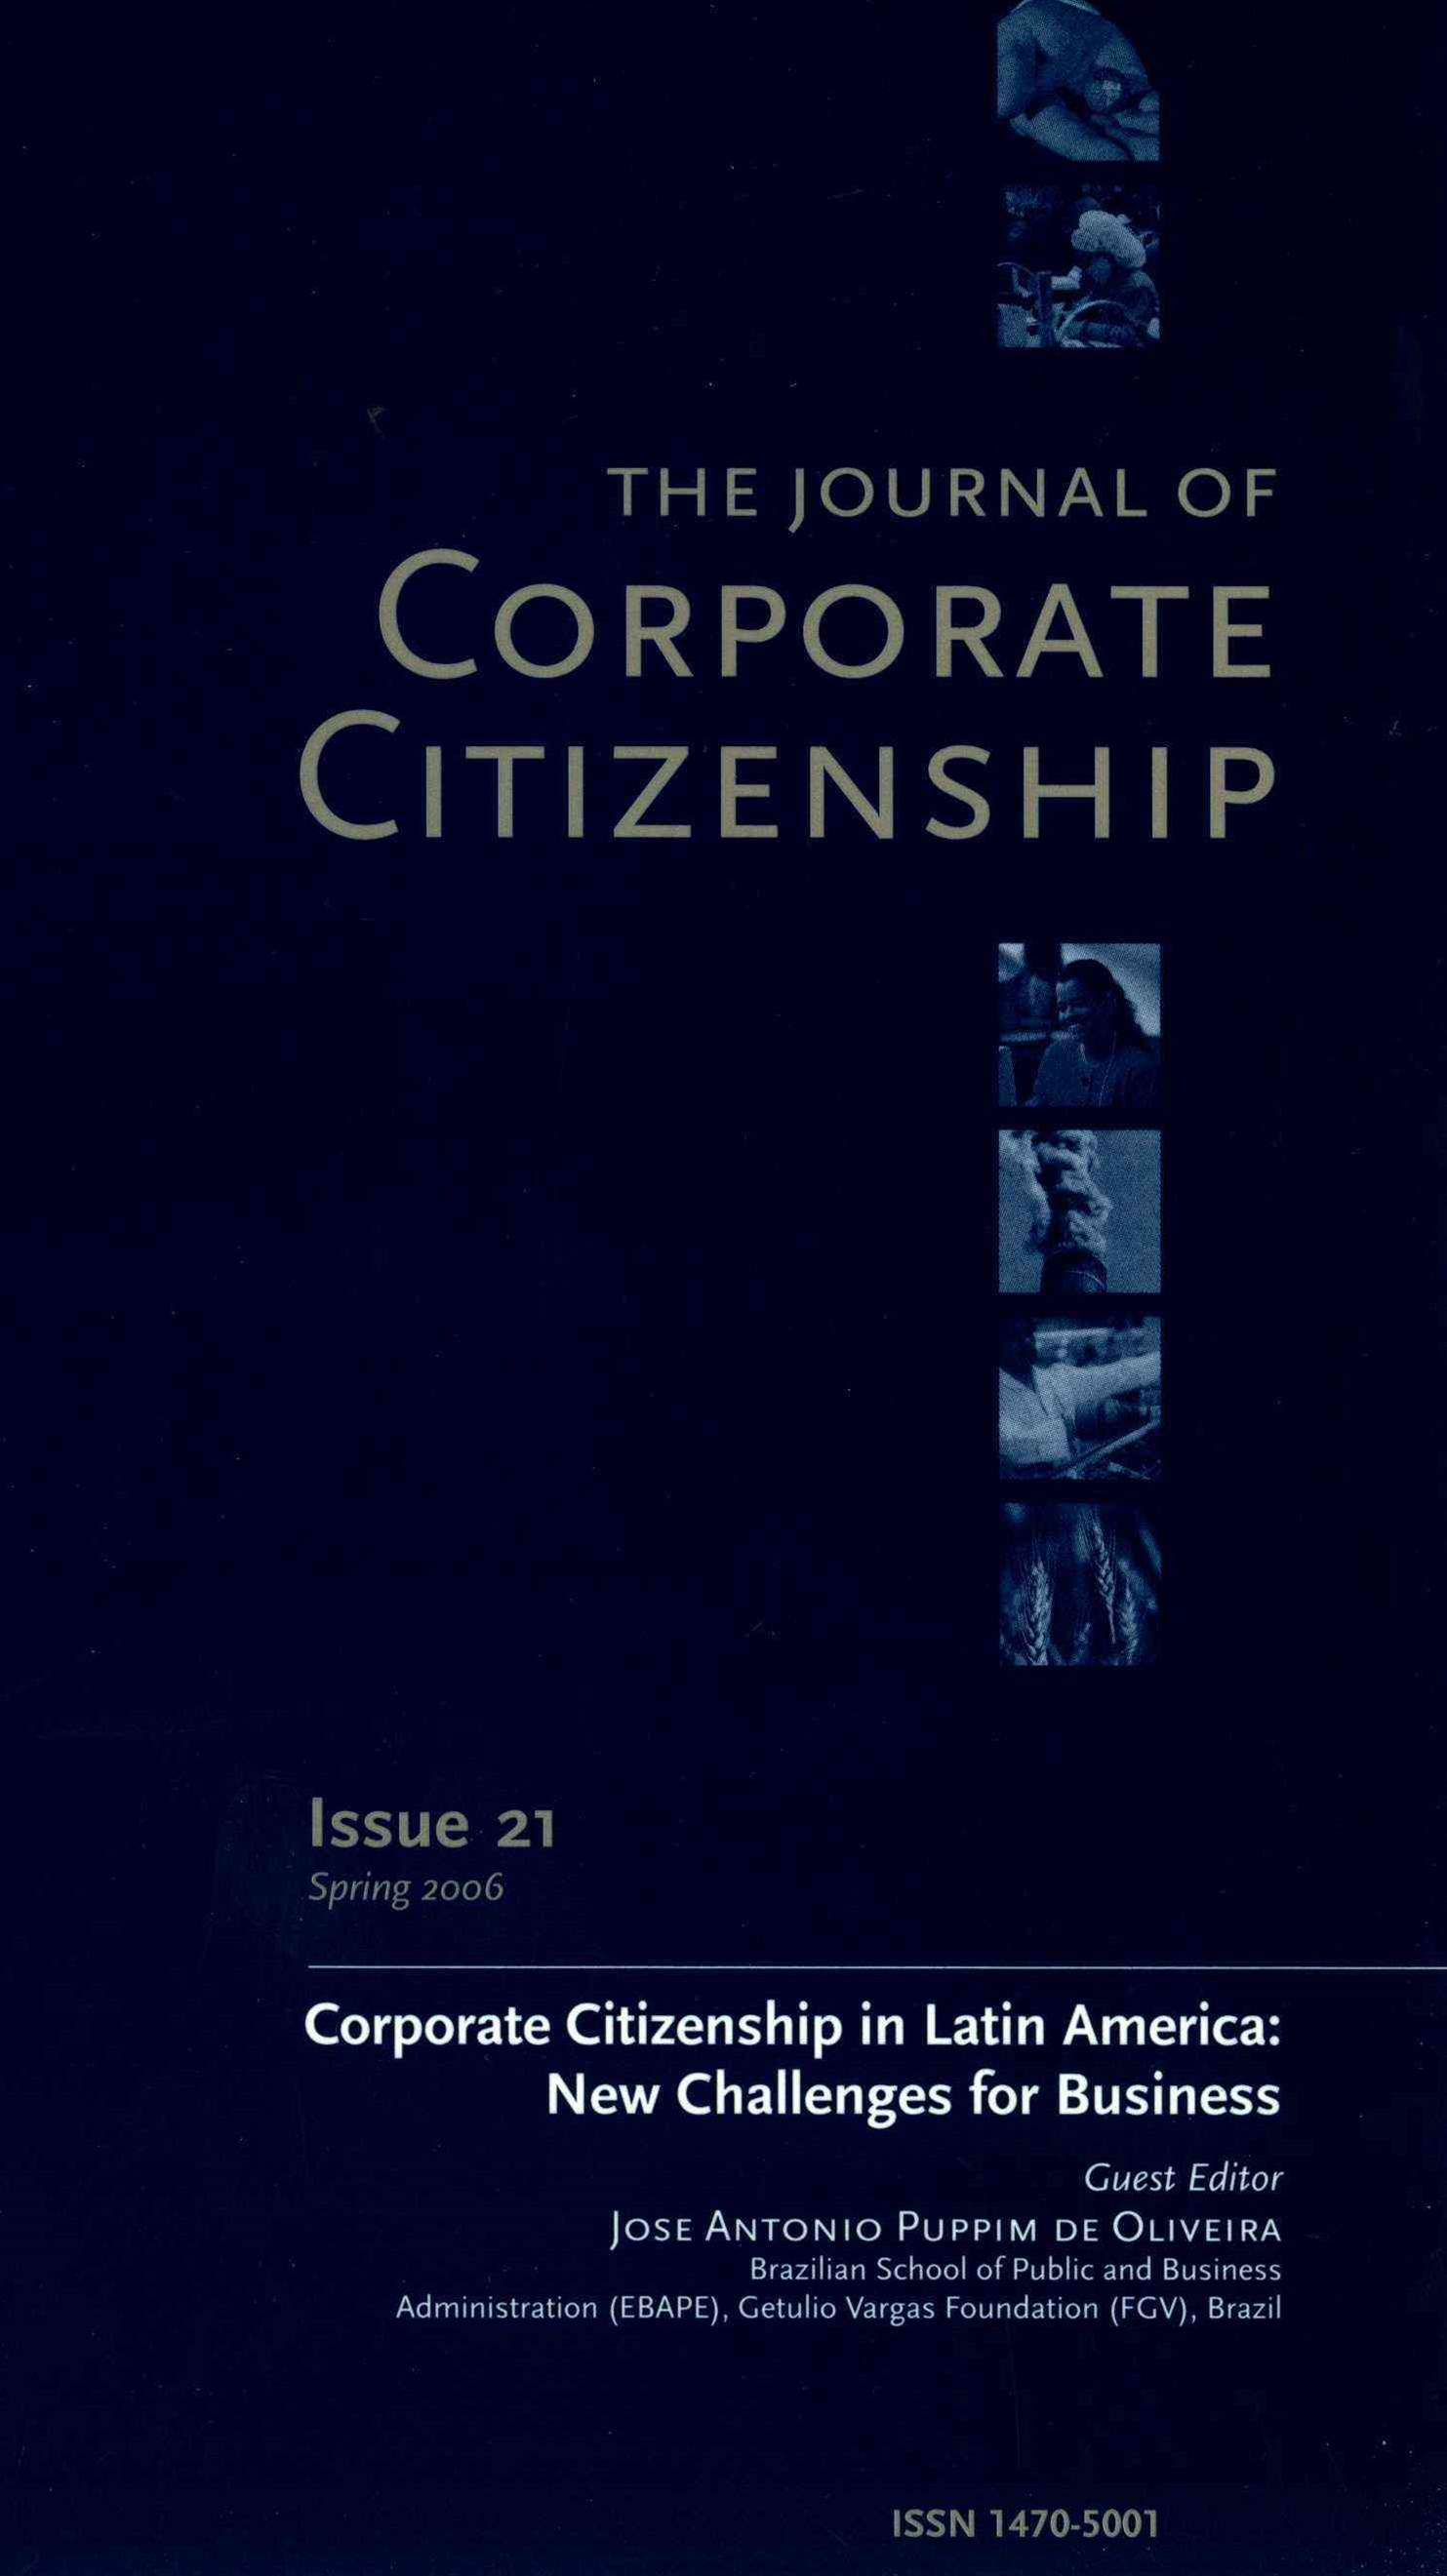 The Journal of Corporate Citizenship